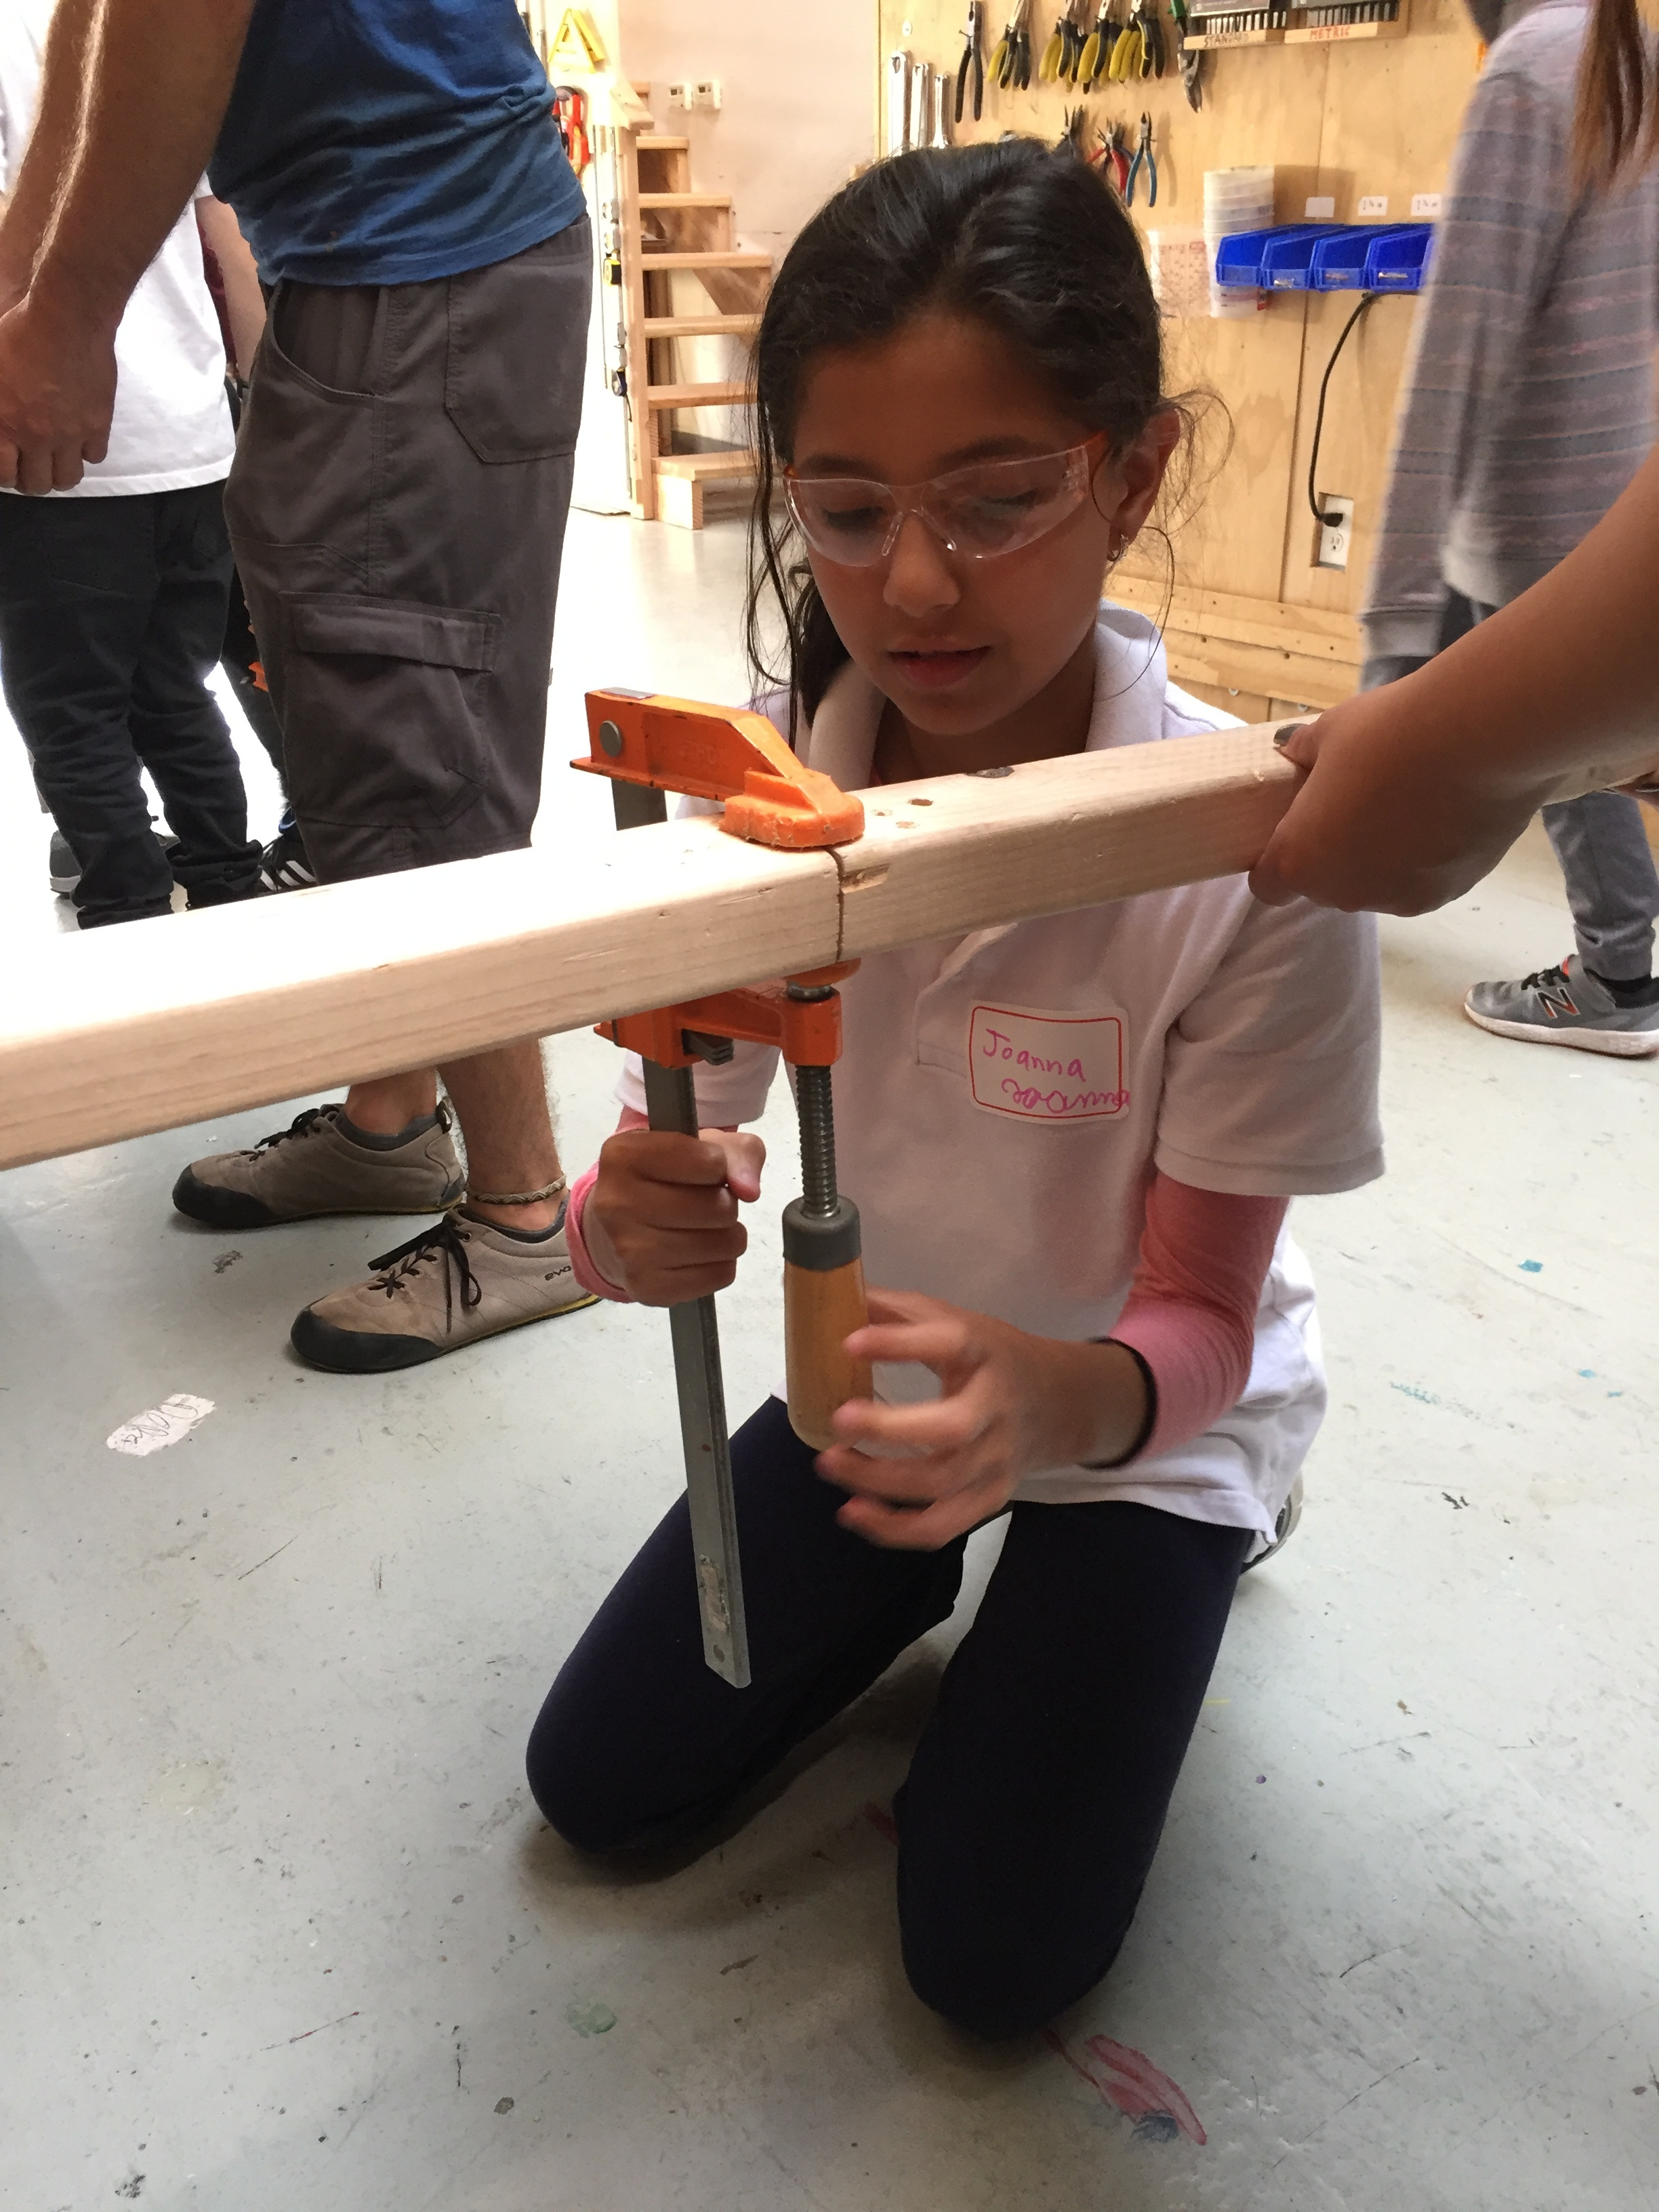 Joanna tested different ways to clamp two pieces of wood together. End to end, the pieces fell apart easily.